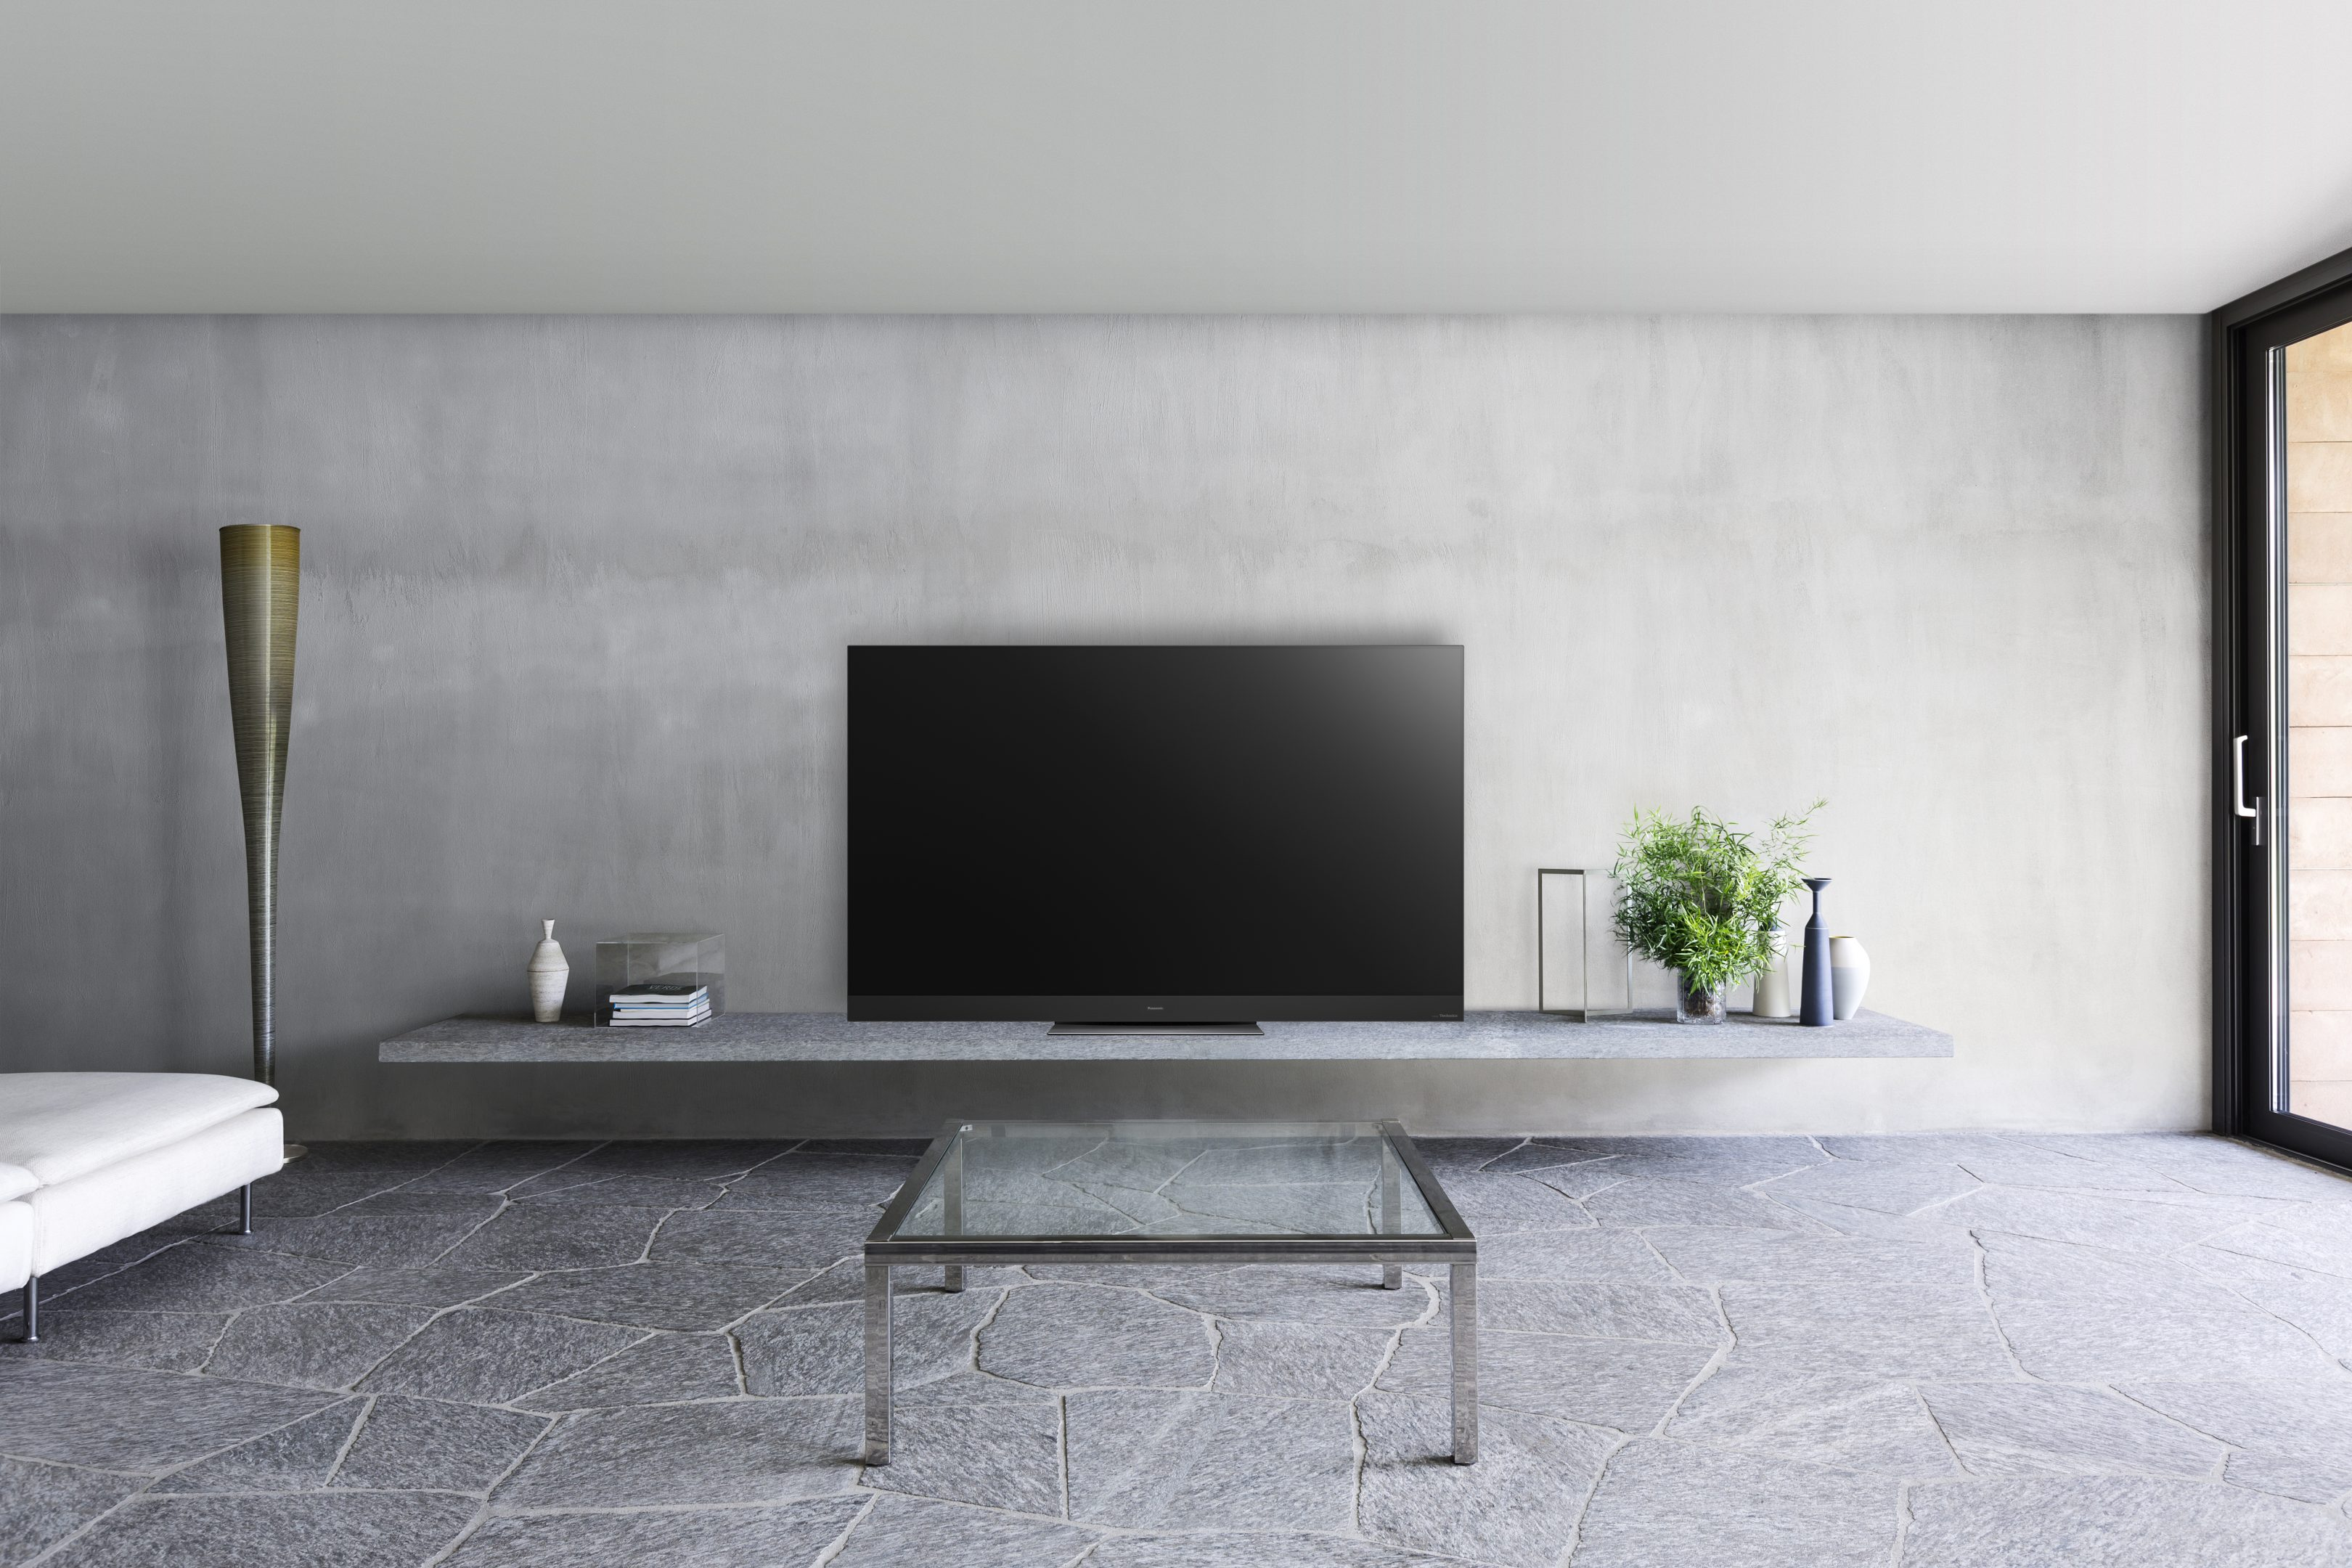 Panasonic 2019 OLED/LED TV Preview - Hollywood at Home   PowerUp!